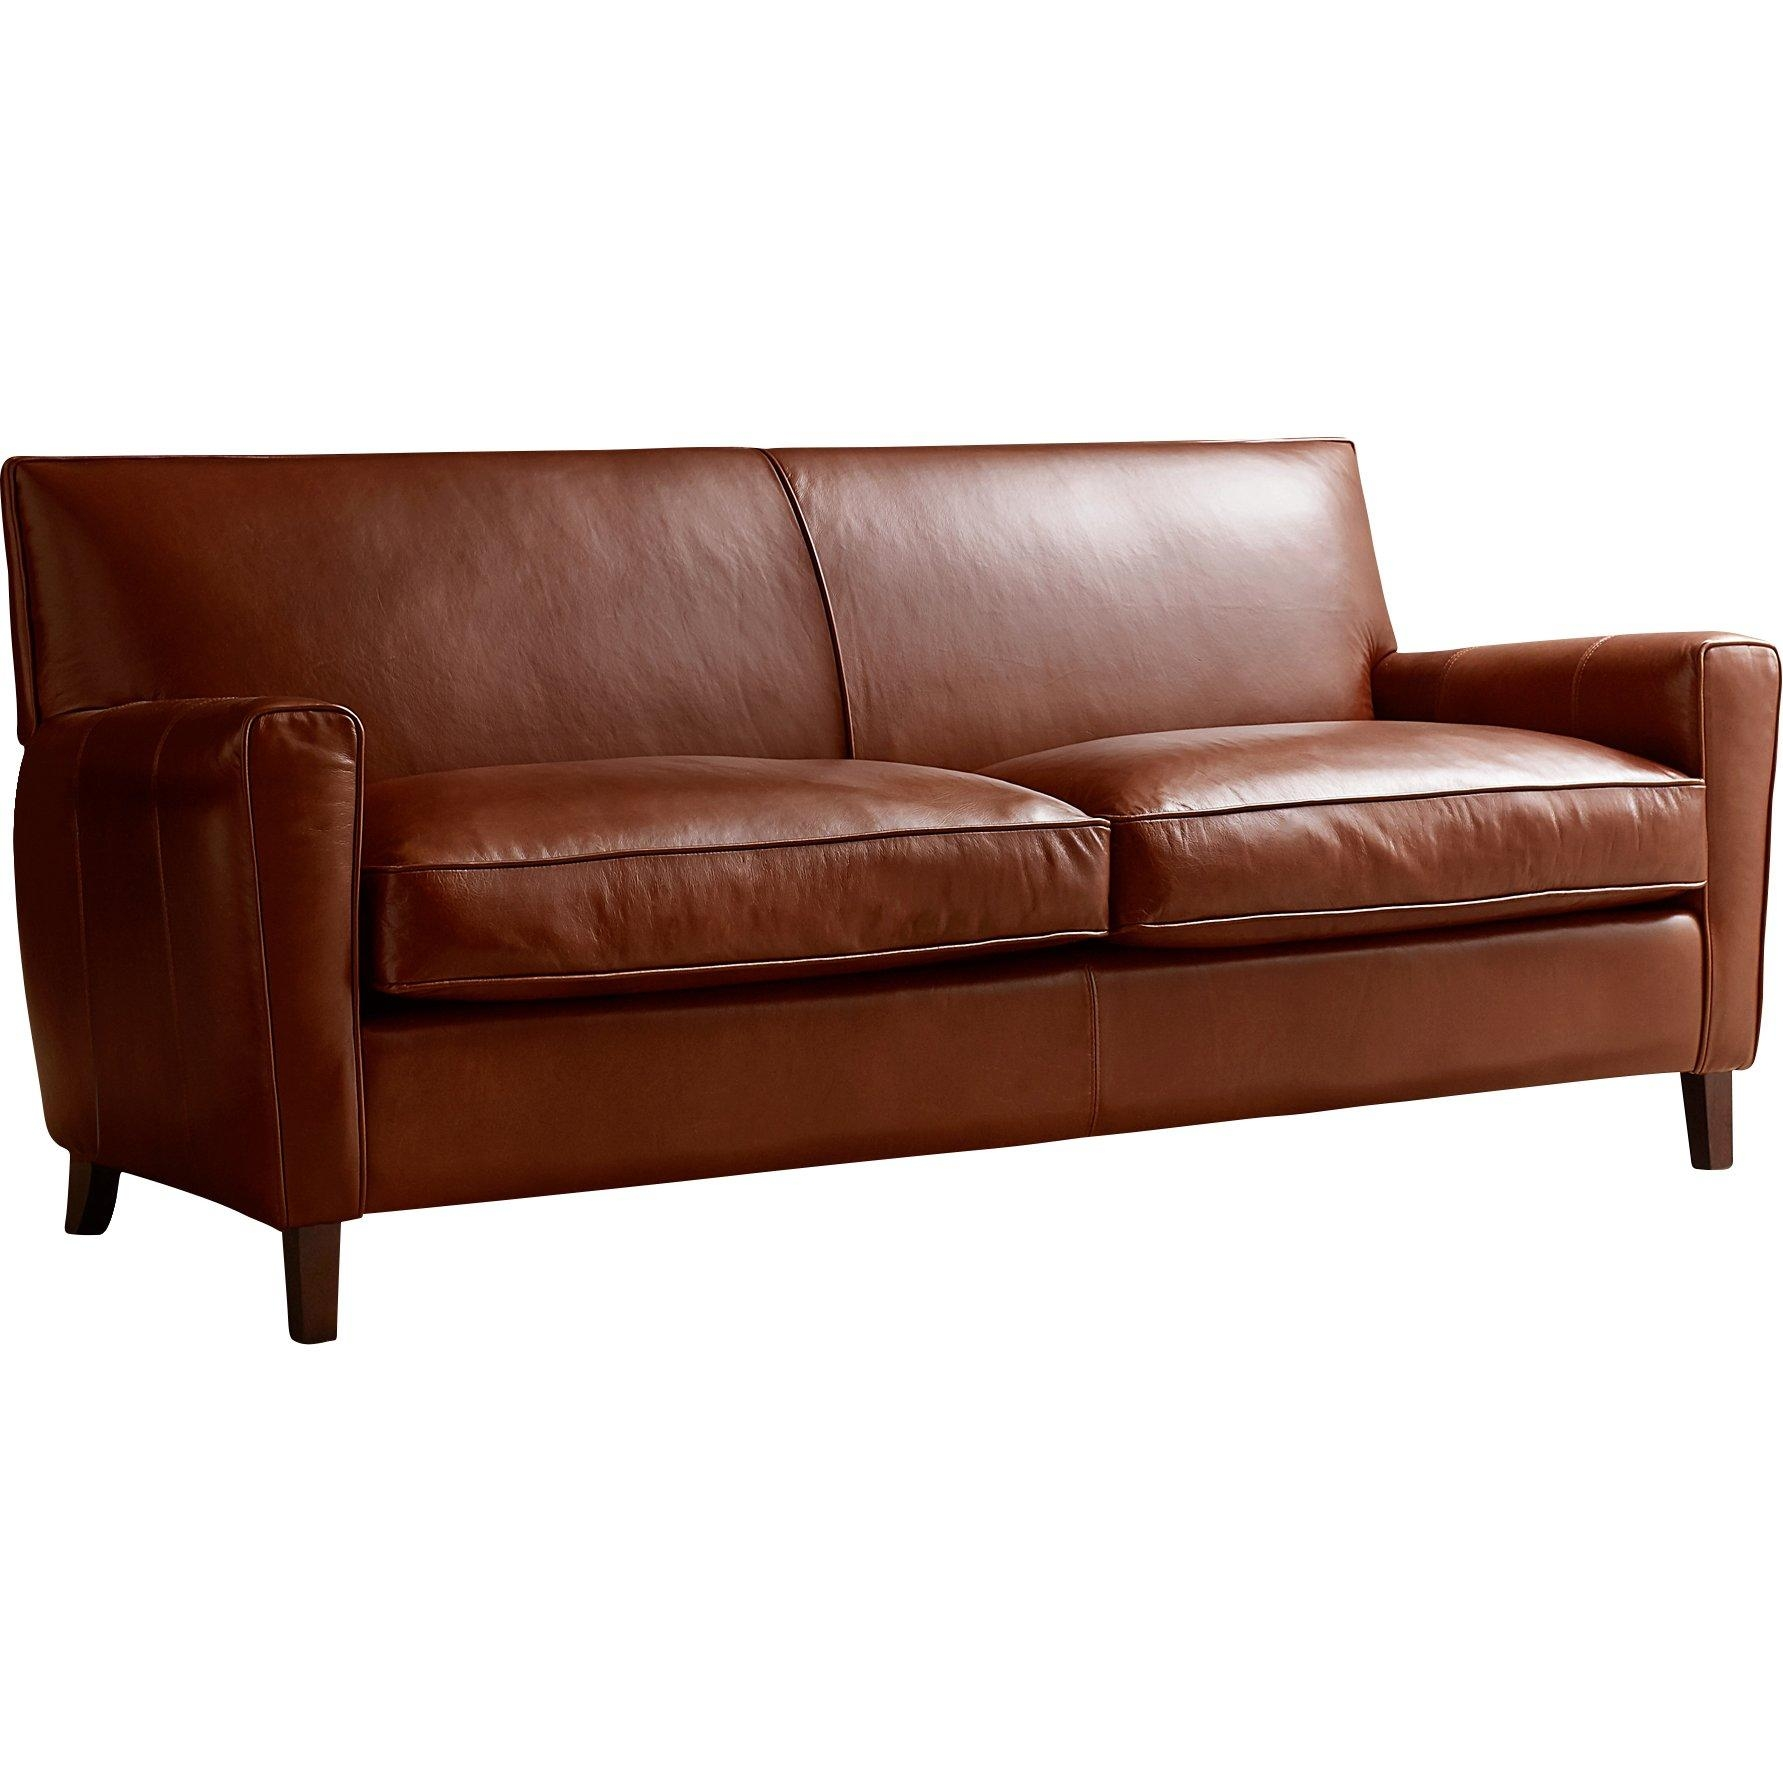 Leather Sofa Contemporary | Tehranmix Decoration Regarding Foster Leather Sofas (Image 16 of 20)